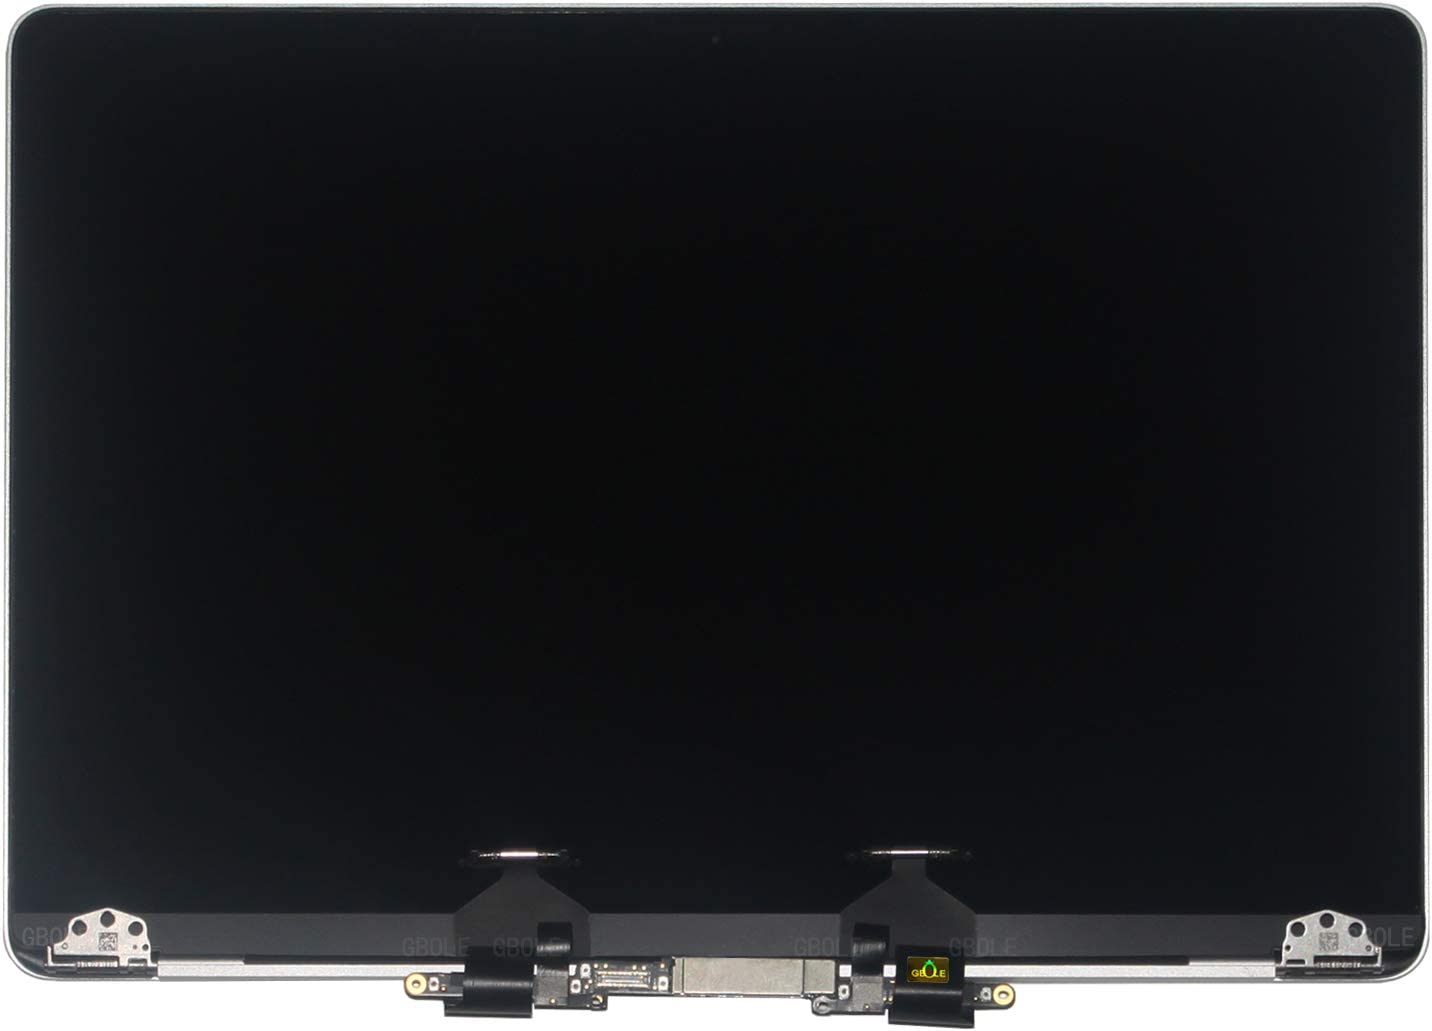 GBOLE Screen Replacement for MacBook Pro A2159 2019 Year EMC3301 MUHN2 MUHP2 MUHQ2 MUHR2 661-12829 Retina Full LCD Screen Complete Top Assembly 13.3